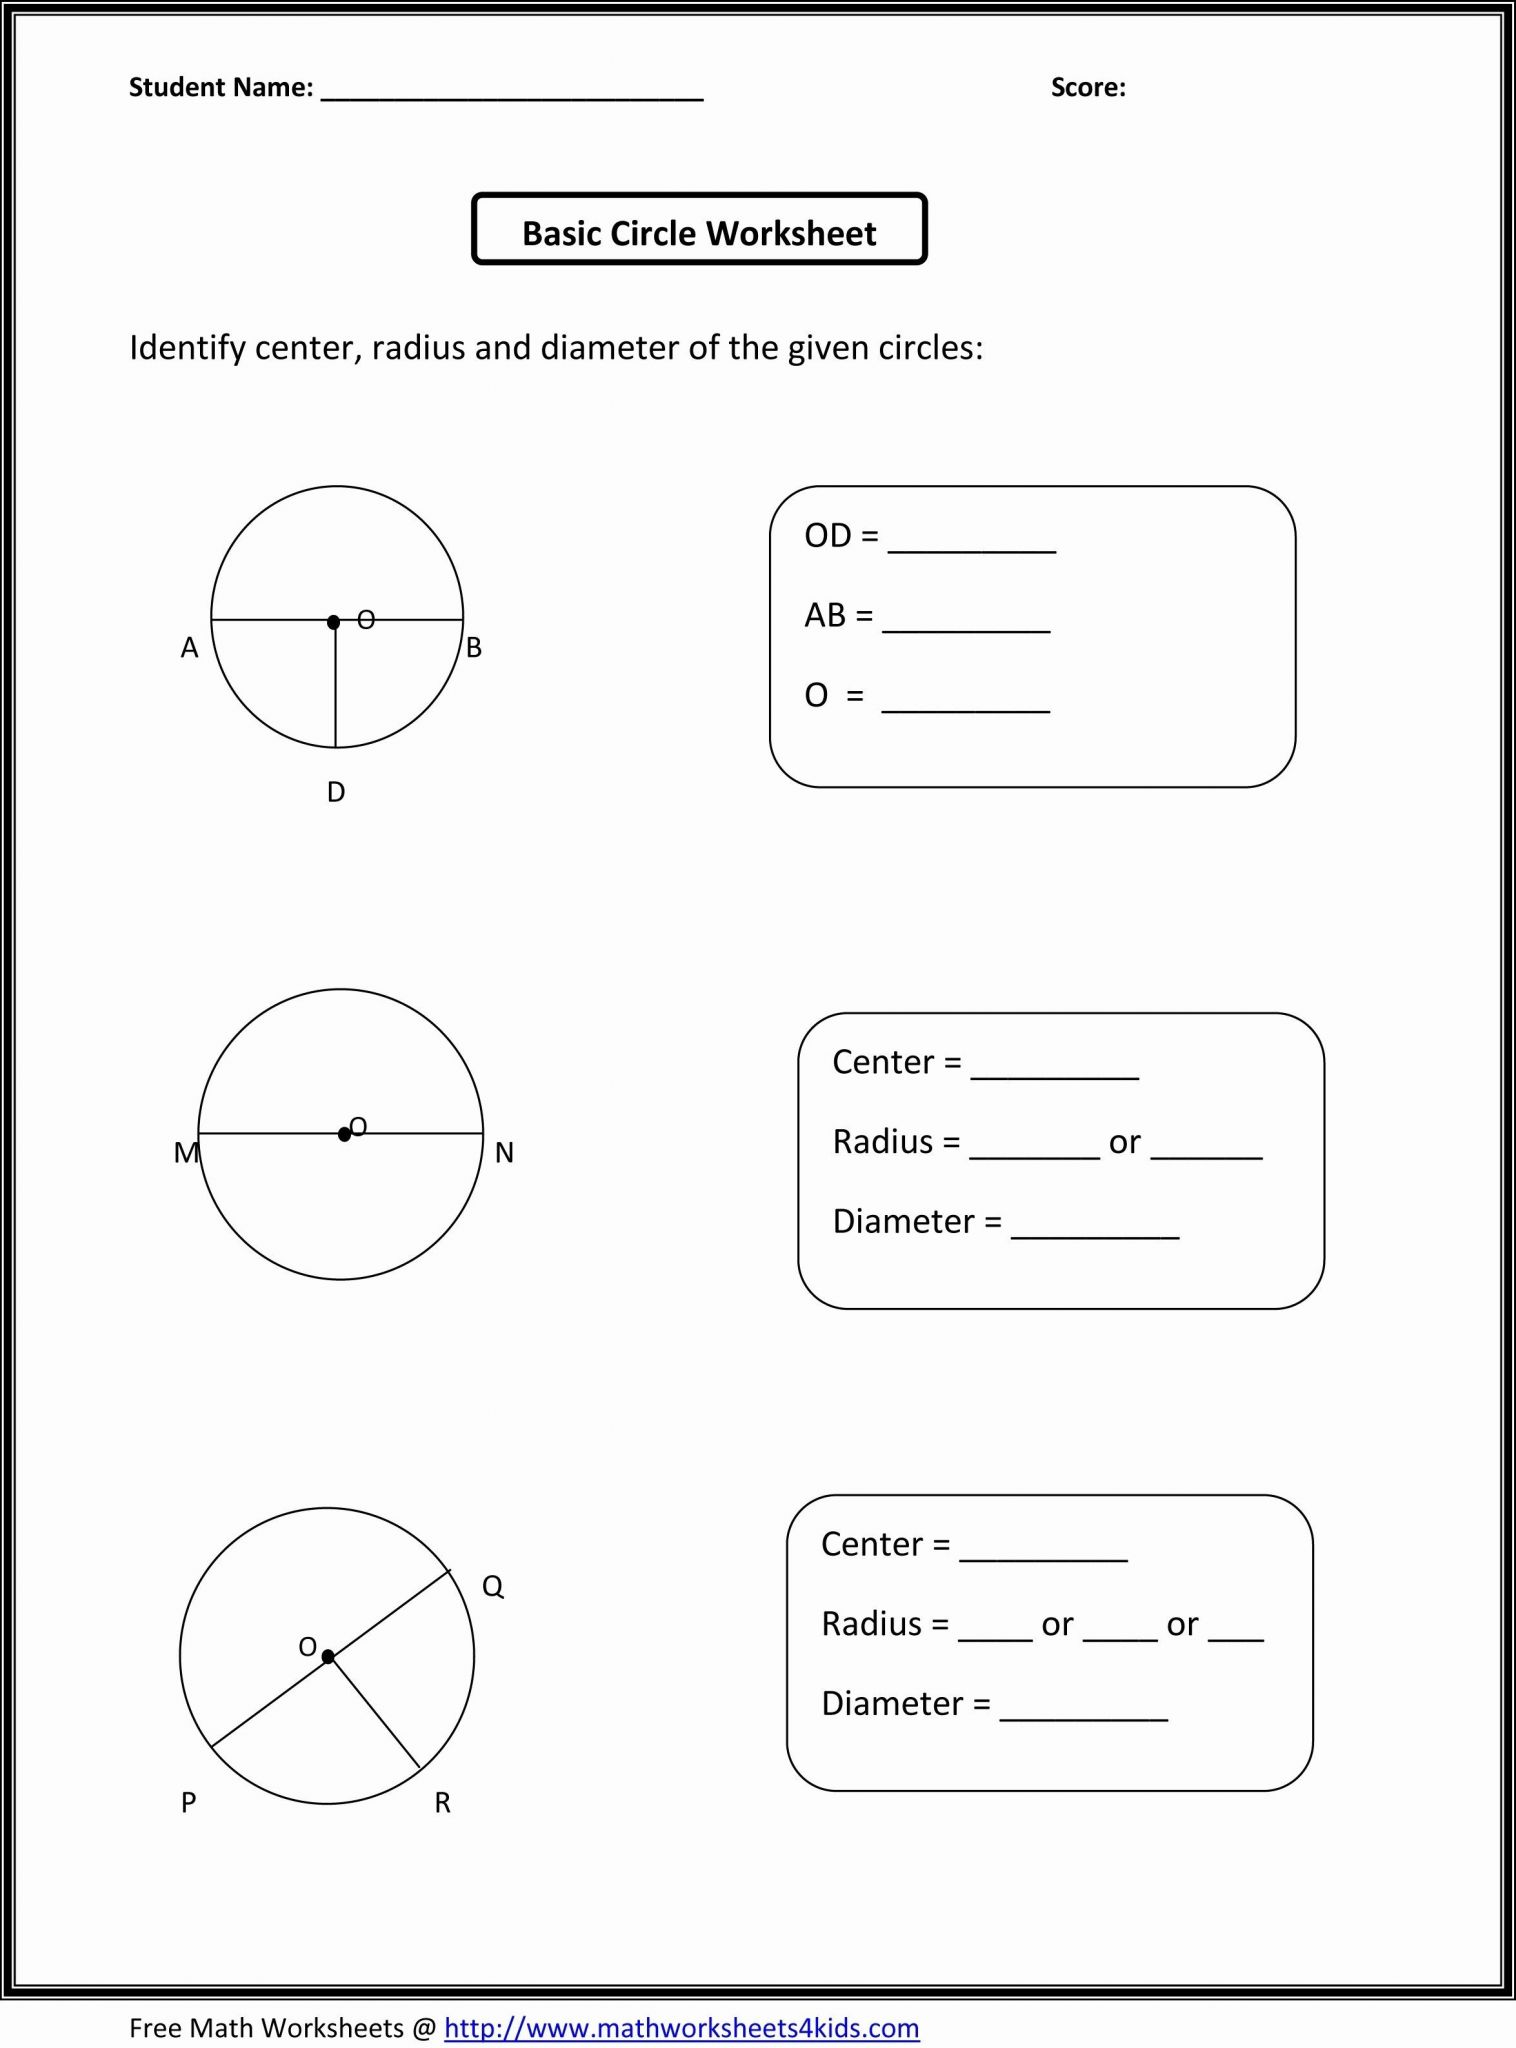 Atoms And Ions Worksheet Answers